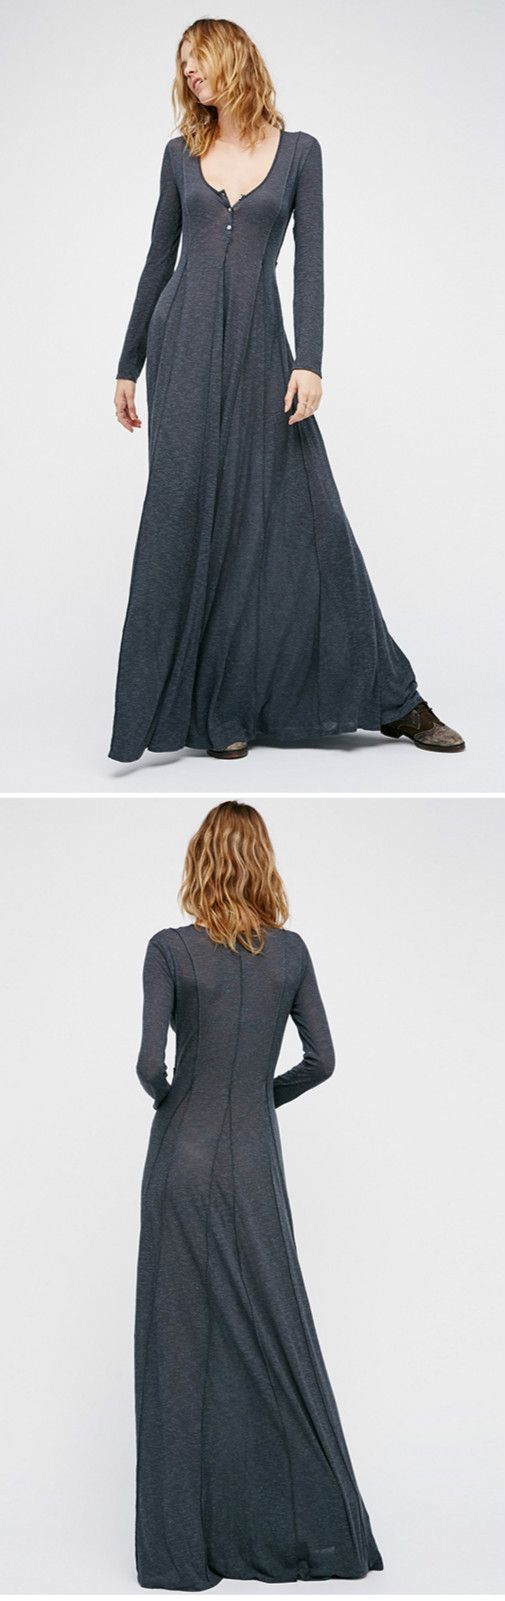 Scoop Neck Long Sleeve Maxi Dress #RePin by Dostinja - WTF IS FASHION featuring my thoughts, inspirations & personal style -> http://www.wtfisfashion.com/